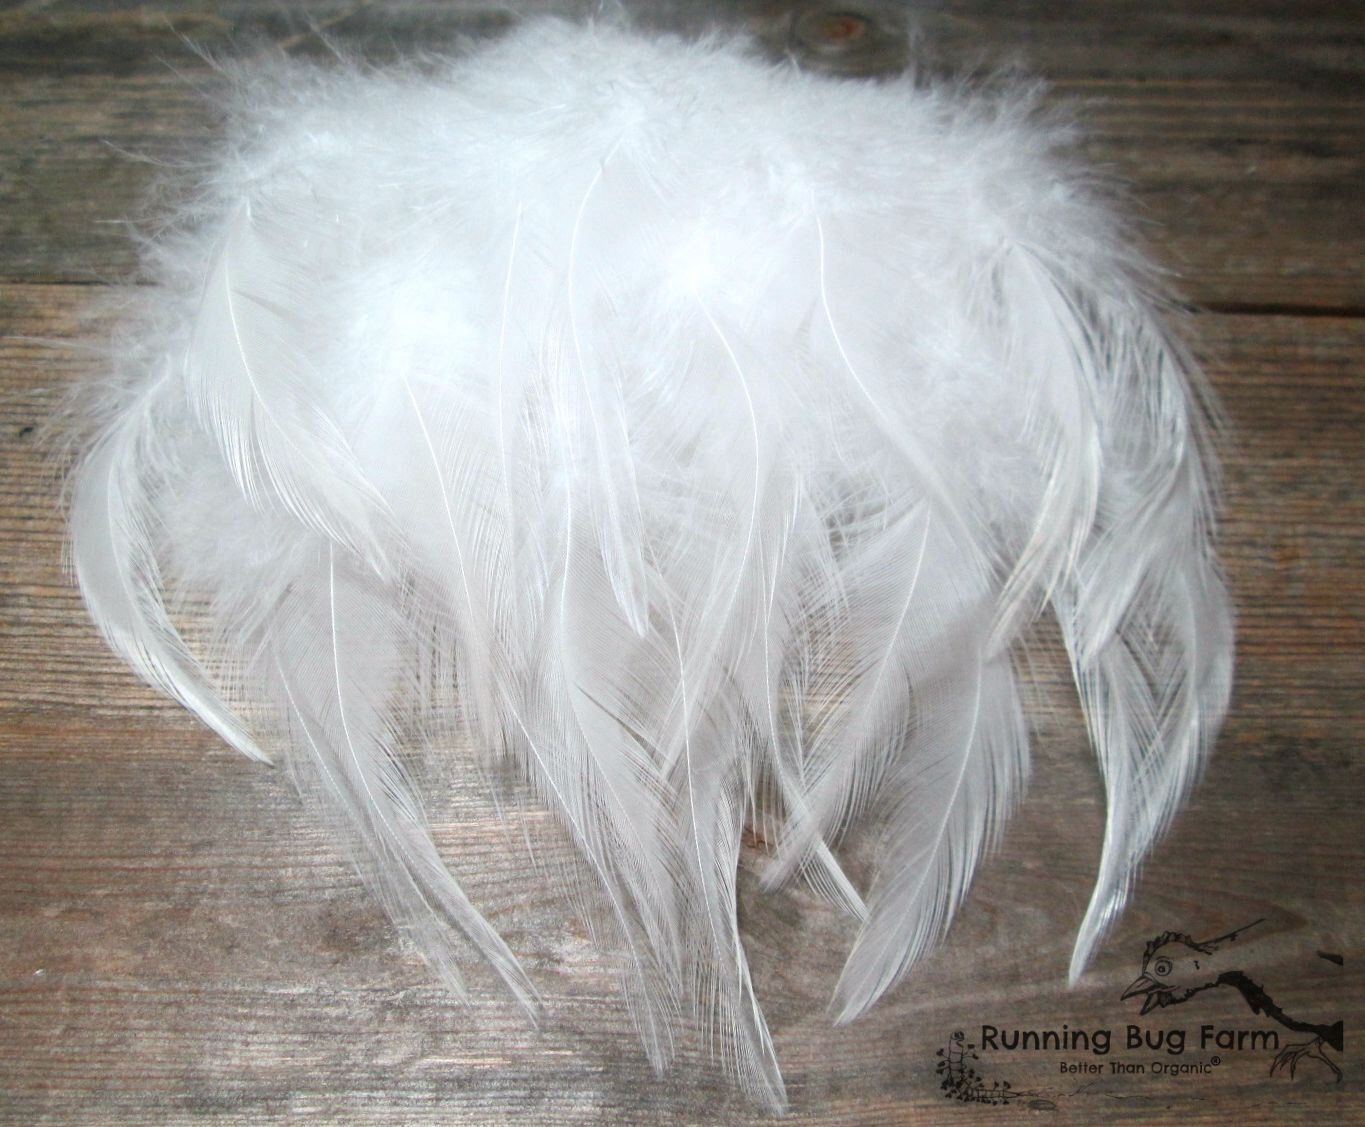 "White Saddle Feathers Real Bird Feather Loose Natural Eco Feather Assortment White Cochin Rooster Plumes Eco Organic 15 @ 4"" - 4.5"" / WC9 by RunningBugFarm on Etsy https://www.etsy.com/transaction/1065186626"